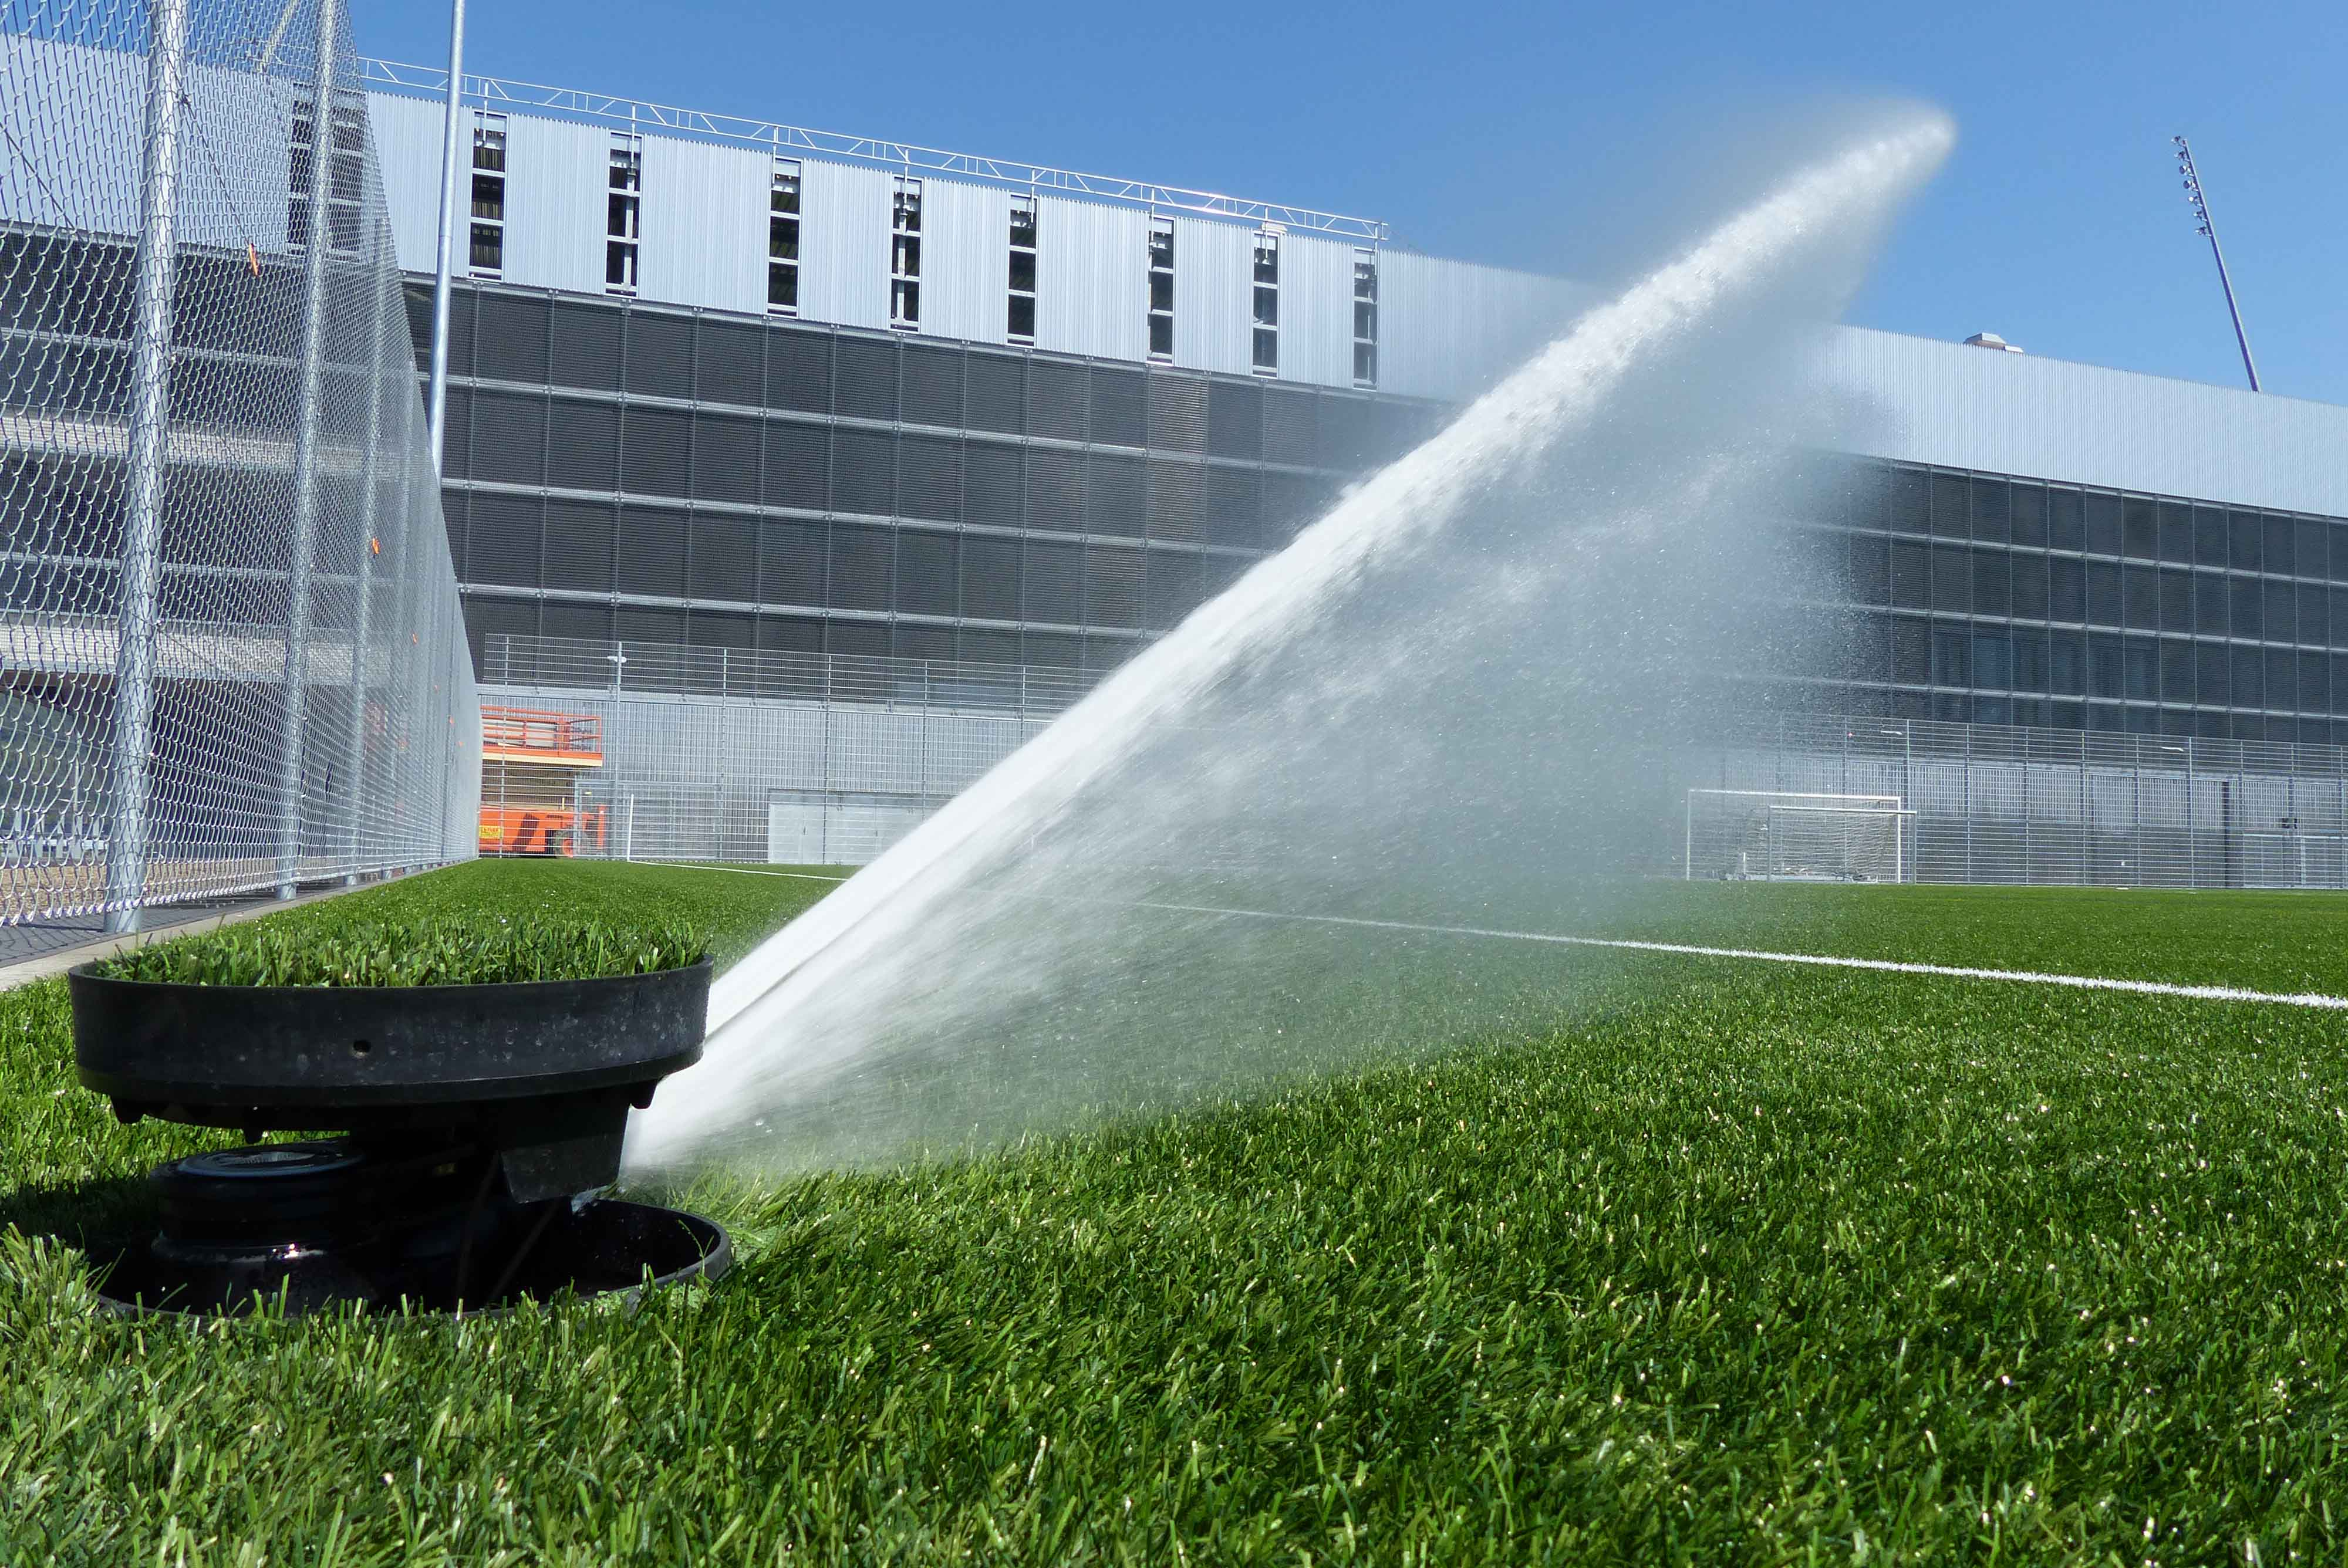 Perrot Sprinklers available in Australia following acquisition by The Toro Company